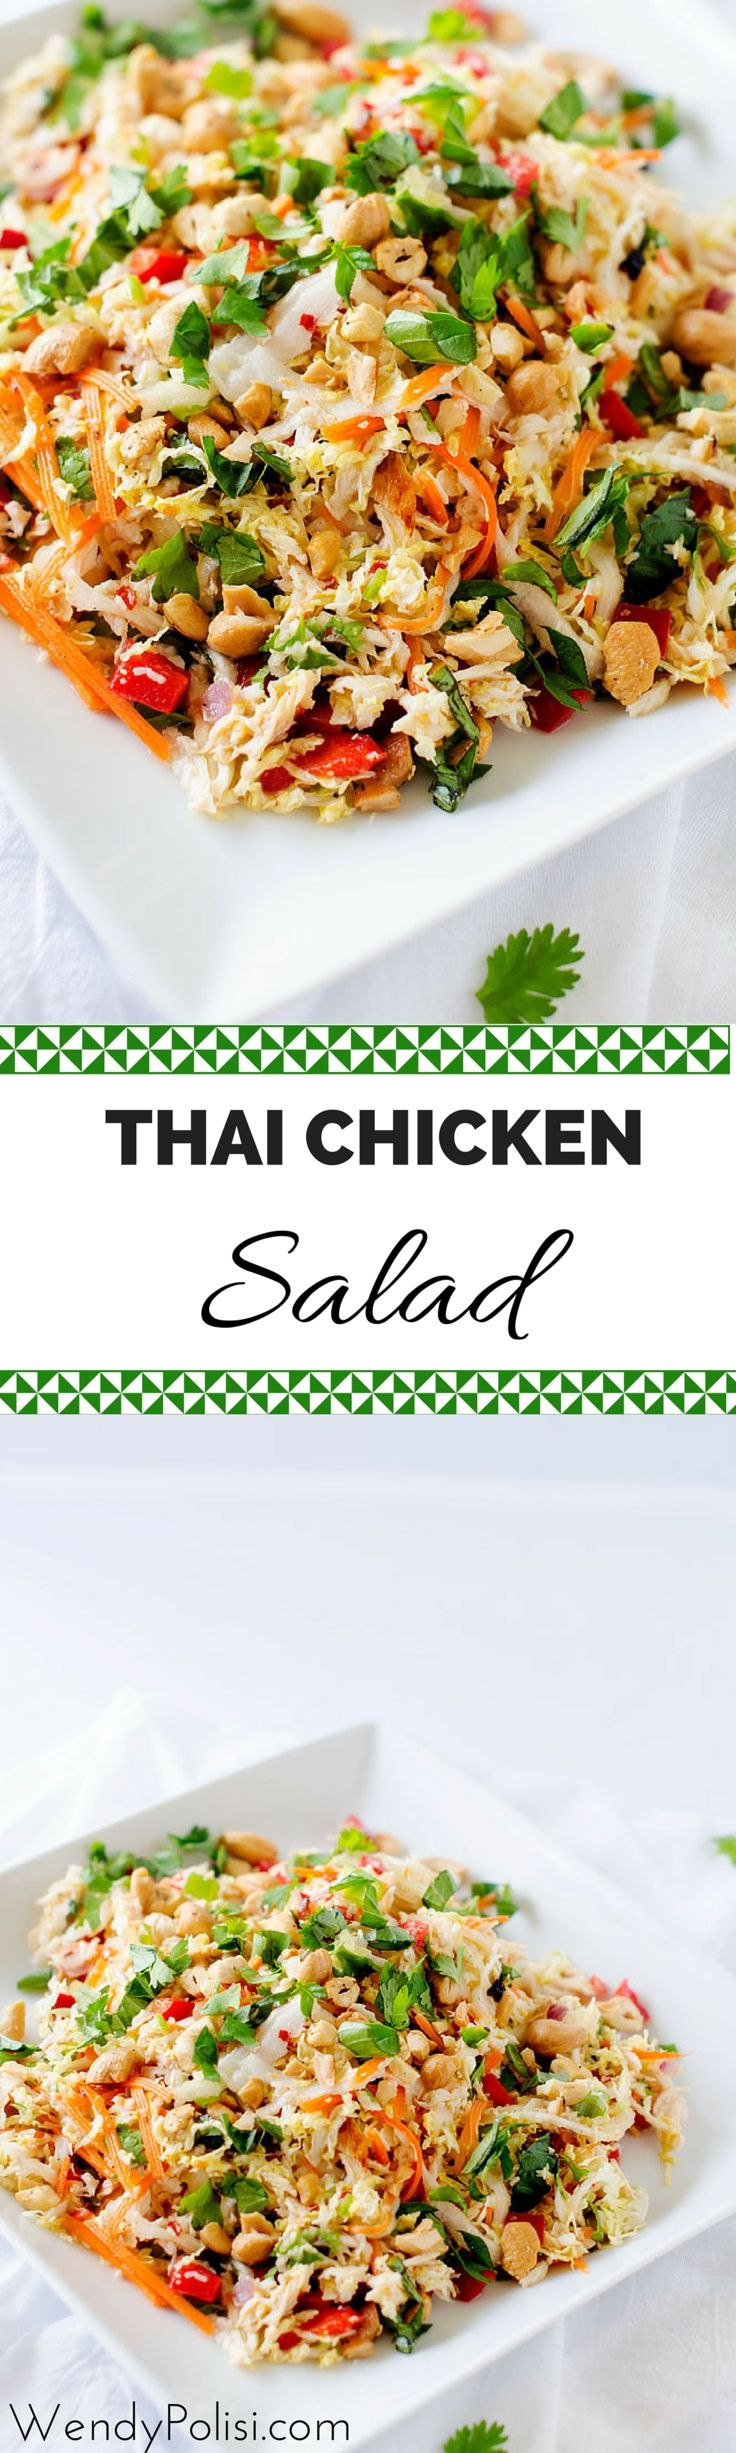 Thai Chicken Salad with Ginger Lime Dressing - This healthy salad recipe is packed with flavor and texture! Naturally gluten free and peanut free, this is a healthy meal you won't want to miss.- WendyPolisi.com via @wendypolisi